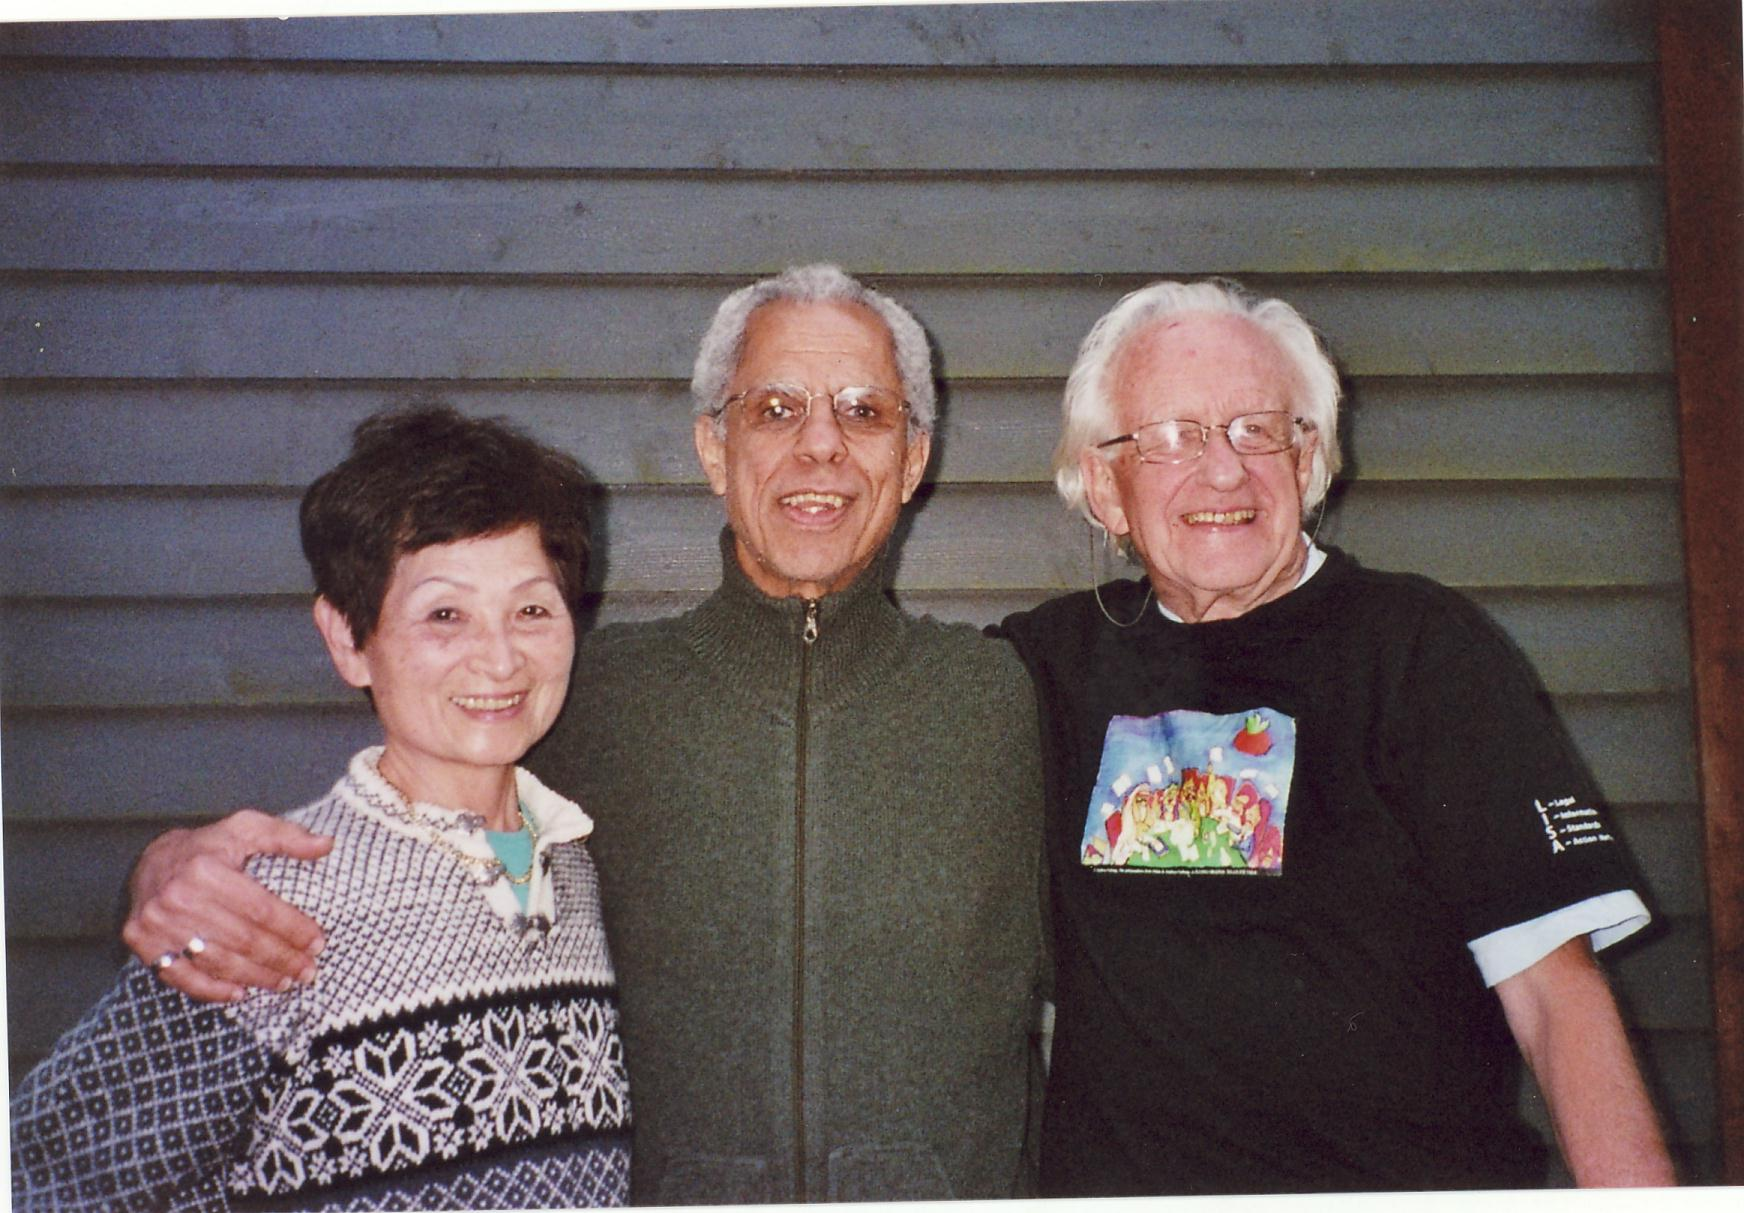 Figure 2: Mrs. Fumiko Galtung, TMS editor Antonio C.S. Rosa, and Johan Galtung in Norway, 2007